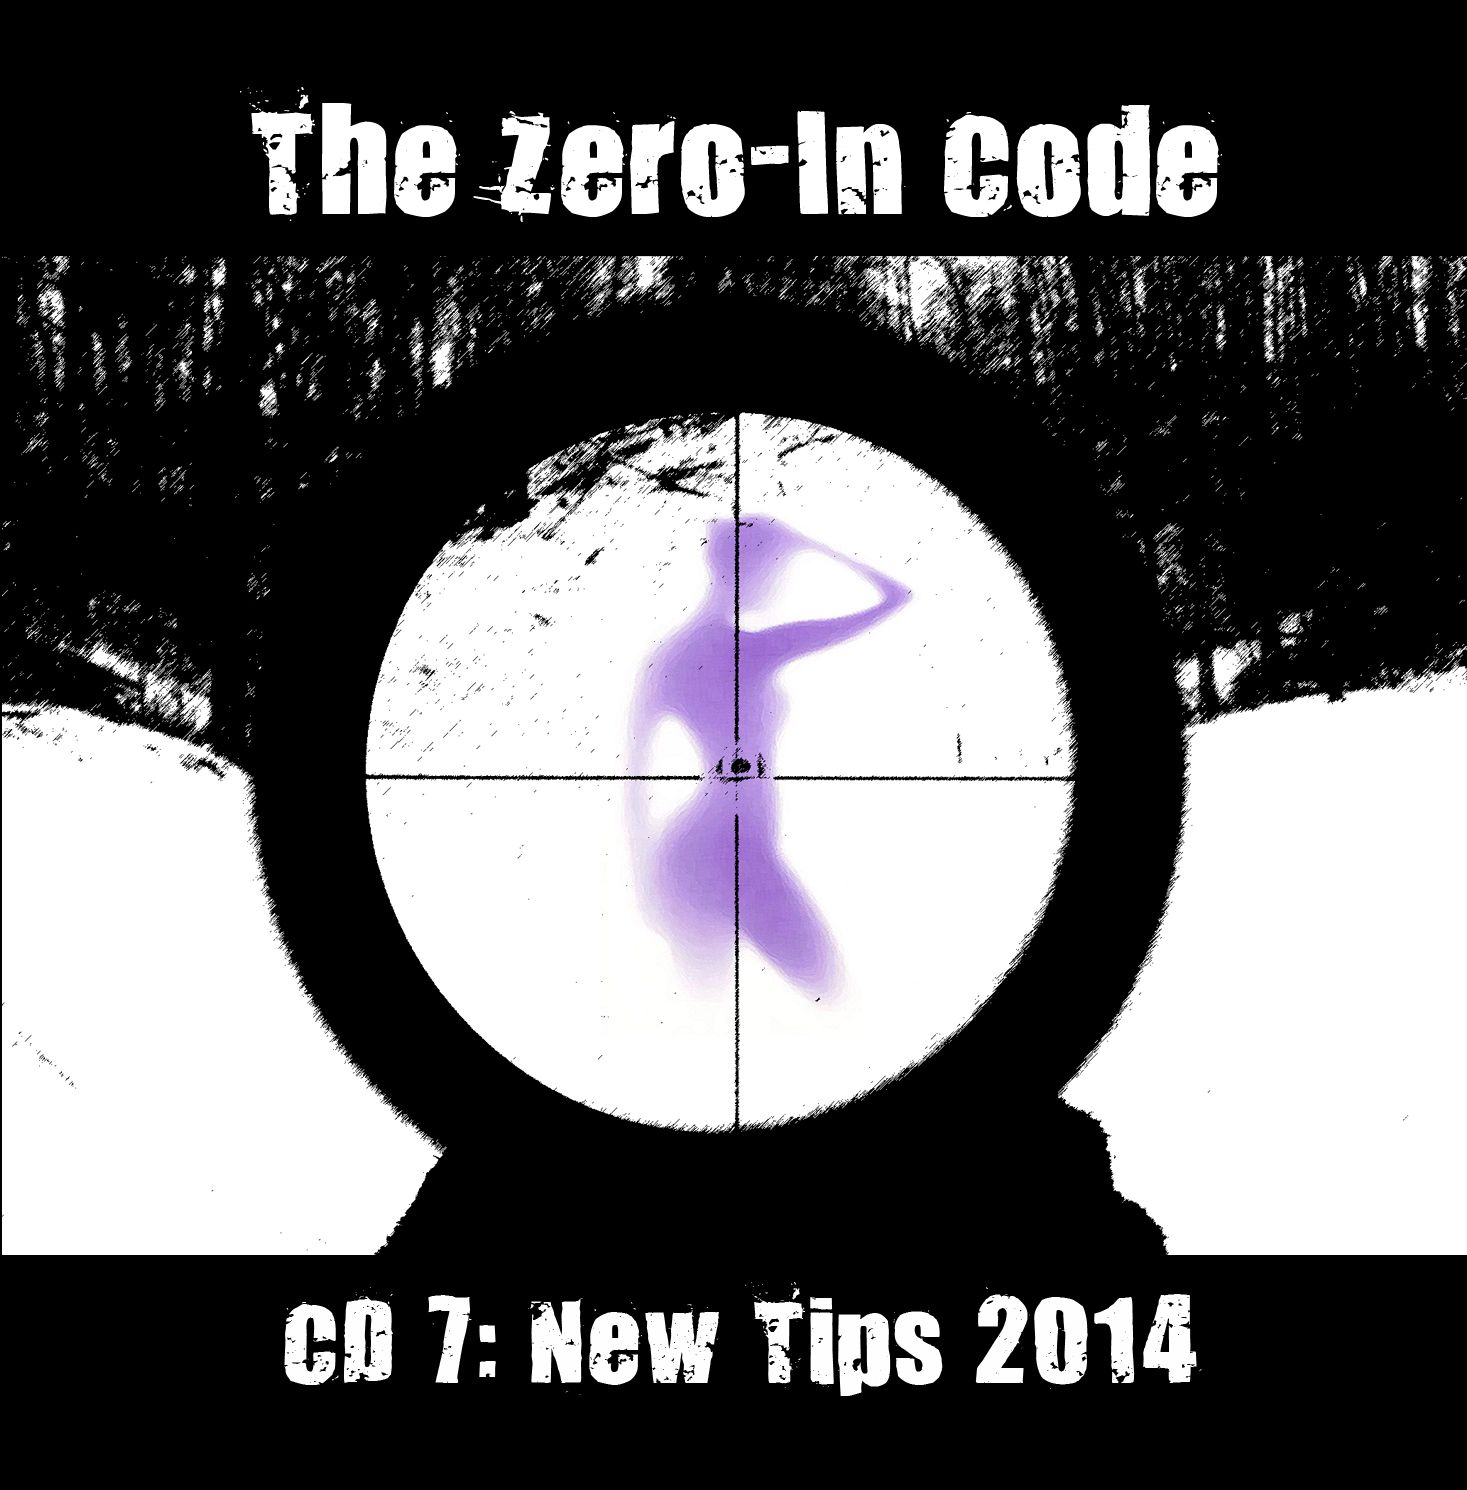 the final cd of the zero in code audio series cd7 is about new tips rh pinterest com Pua Escalation Kino Escalation Ladder